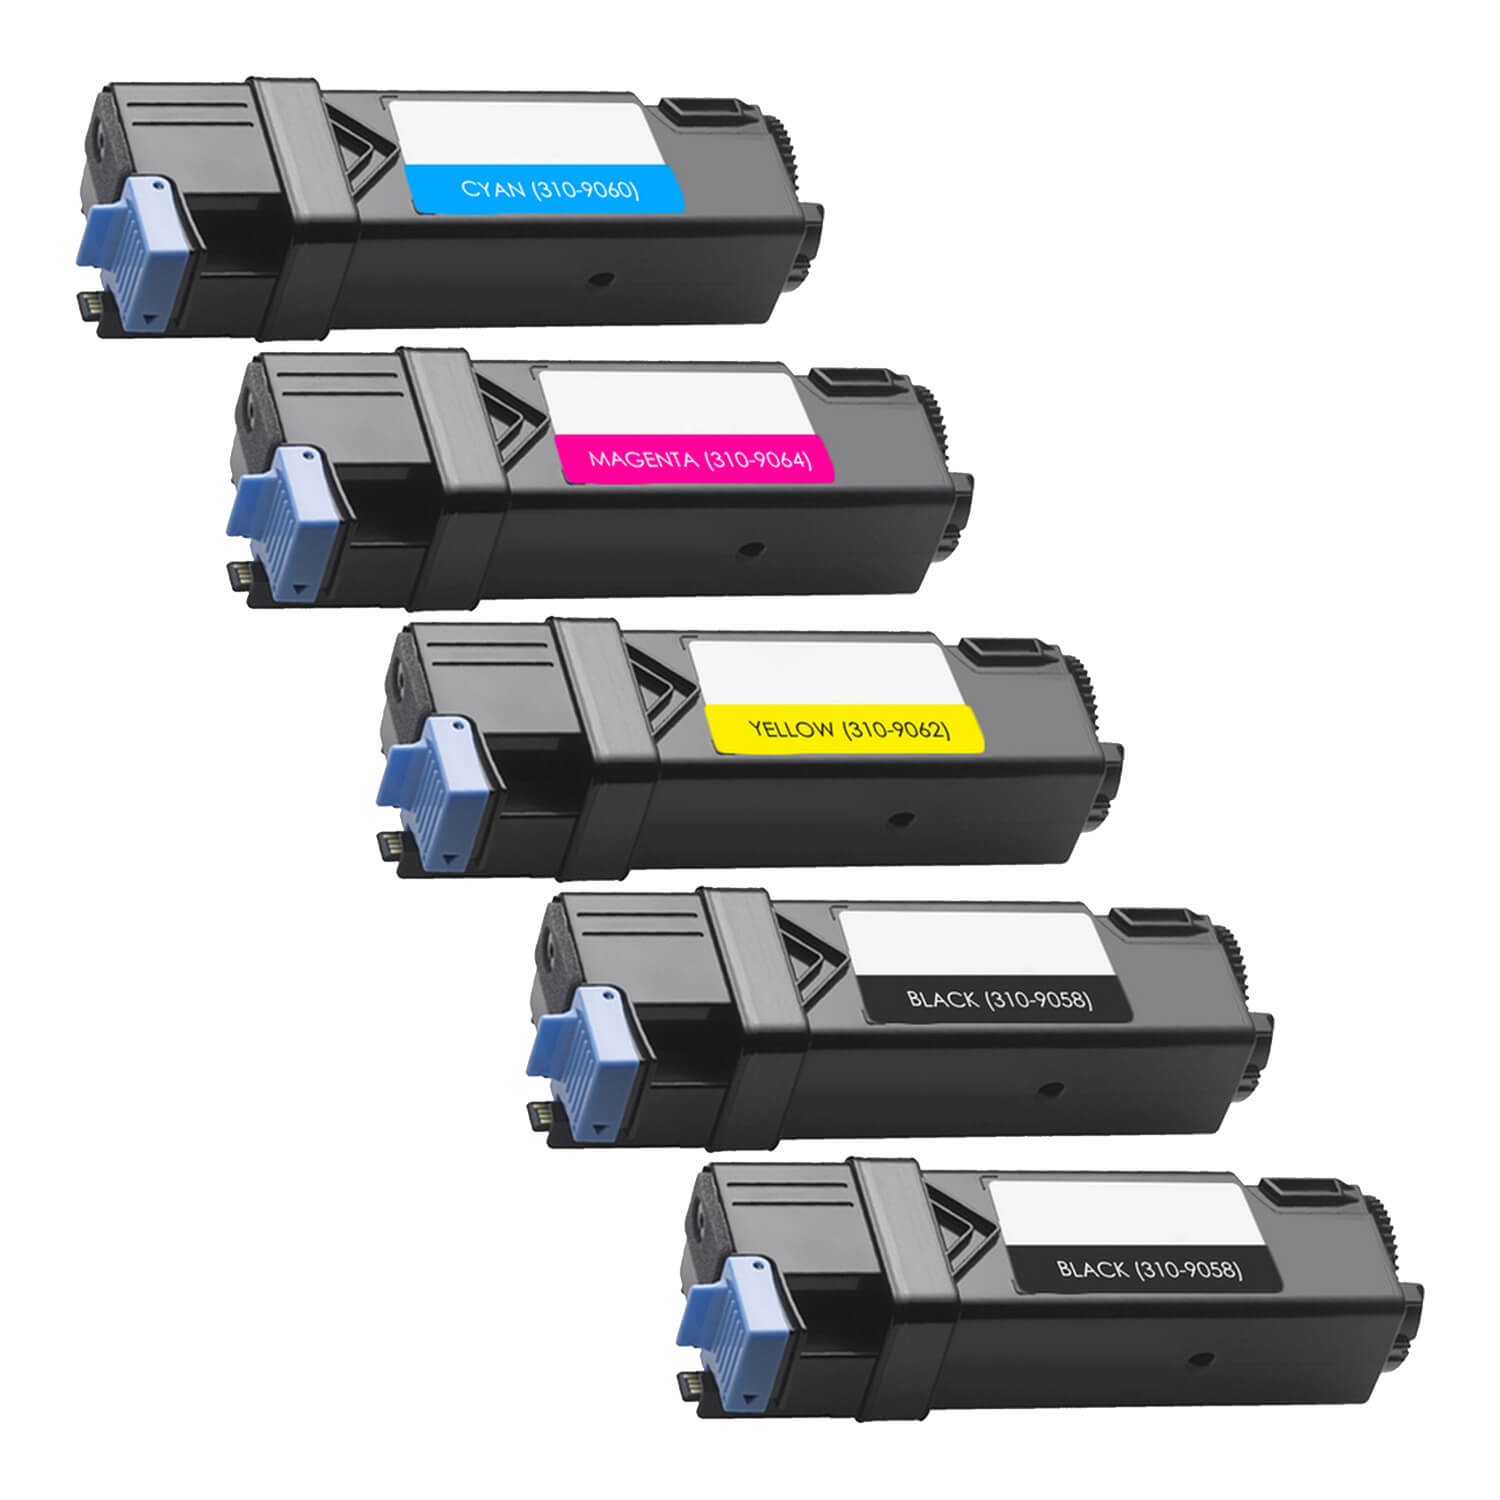 Remanufactured Xerox 6130 Toner Pack - 5 Cartridges